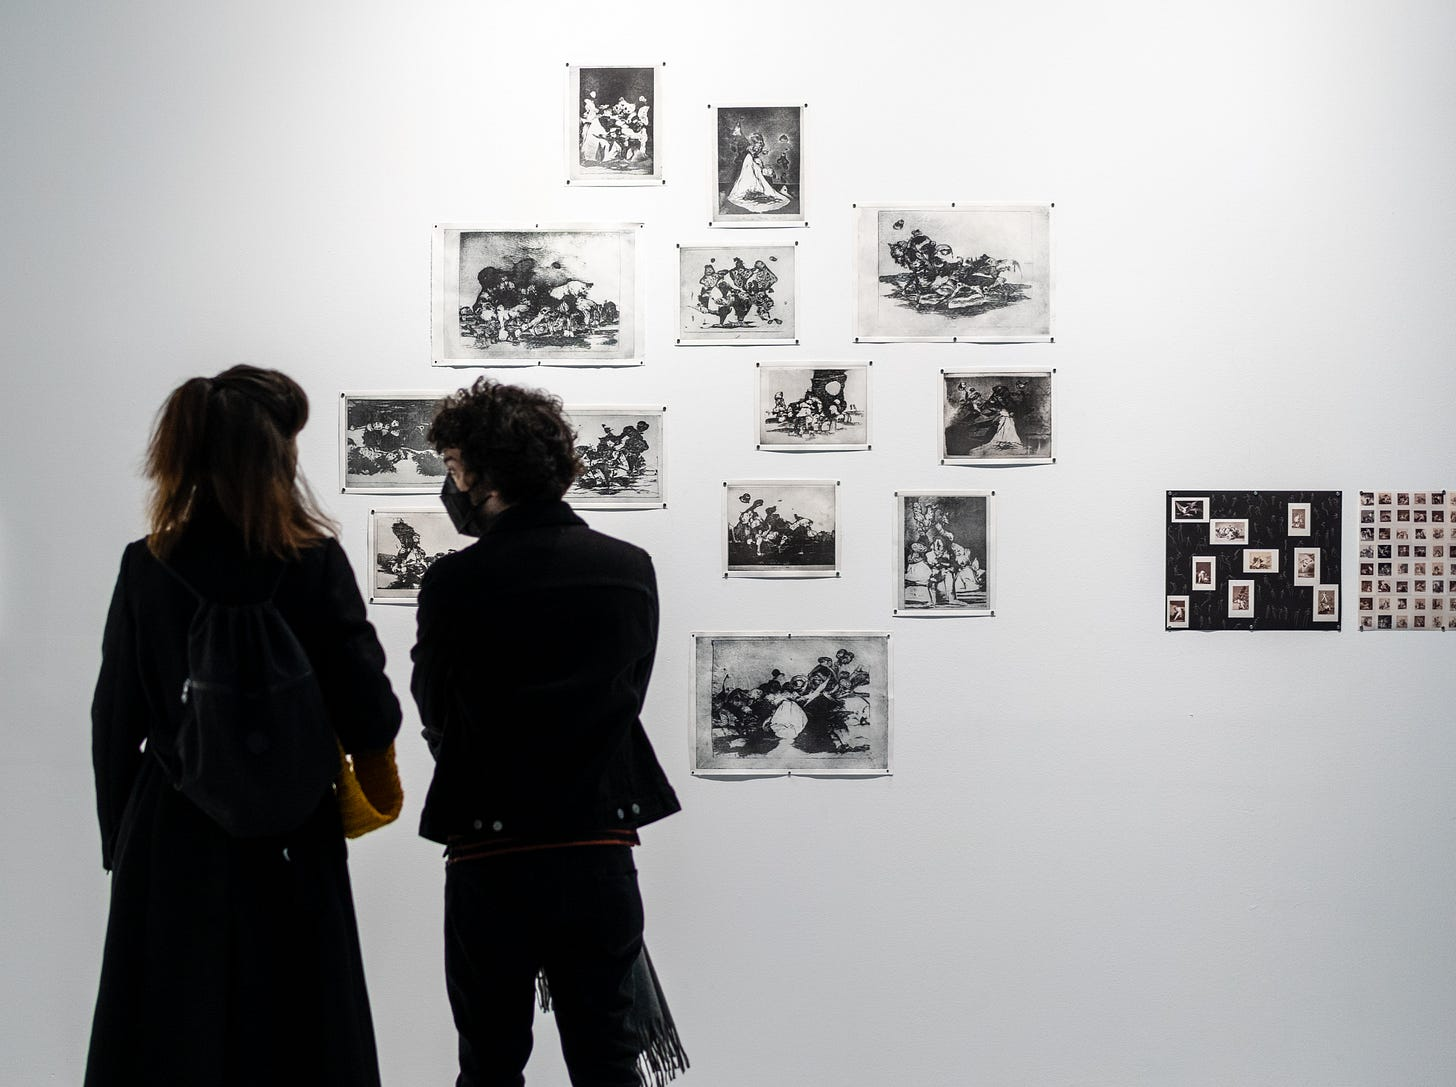 Gallery view of intaglio prints on the wall. Two people stand and chat in front of the prints, masks on.